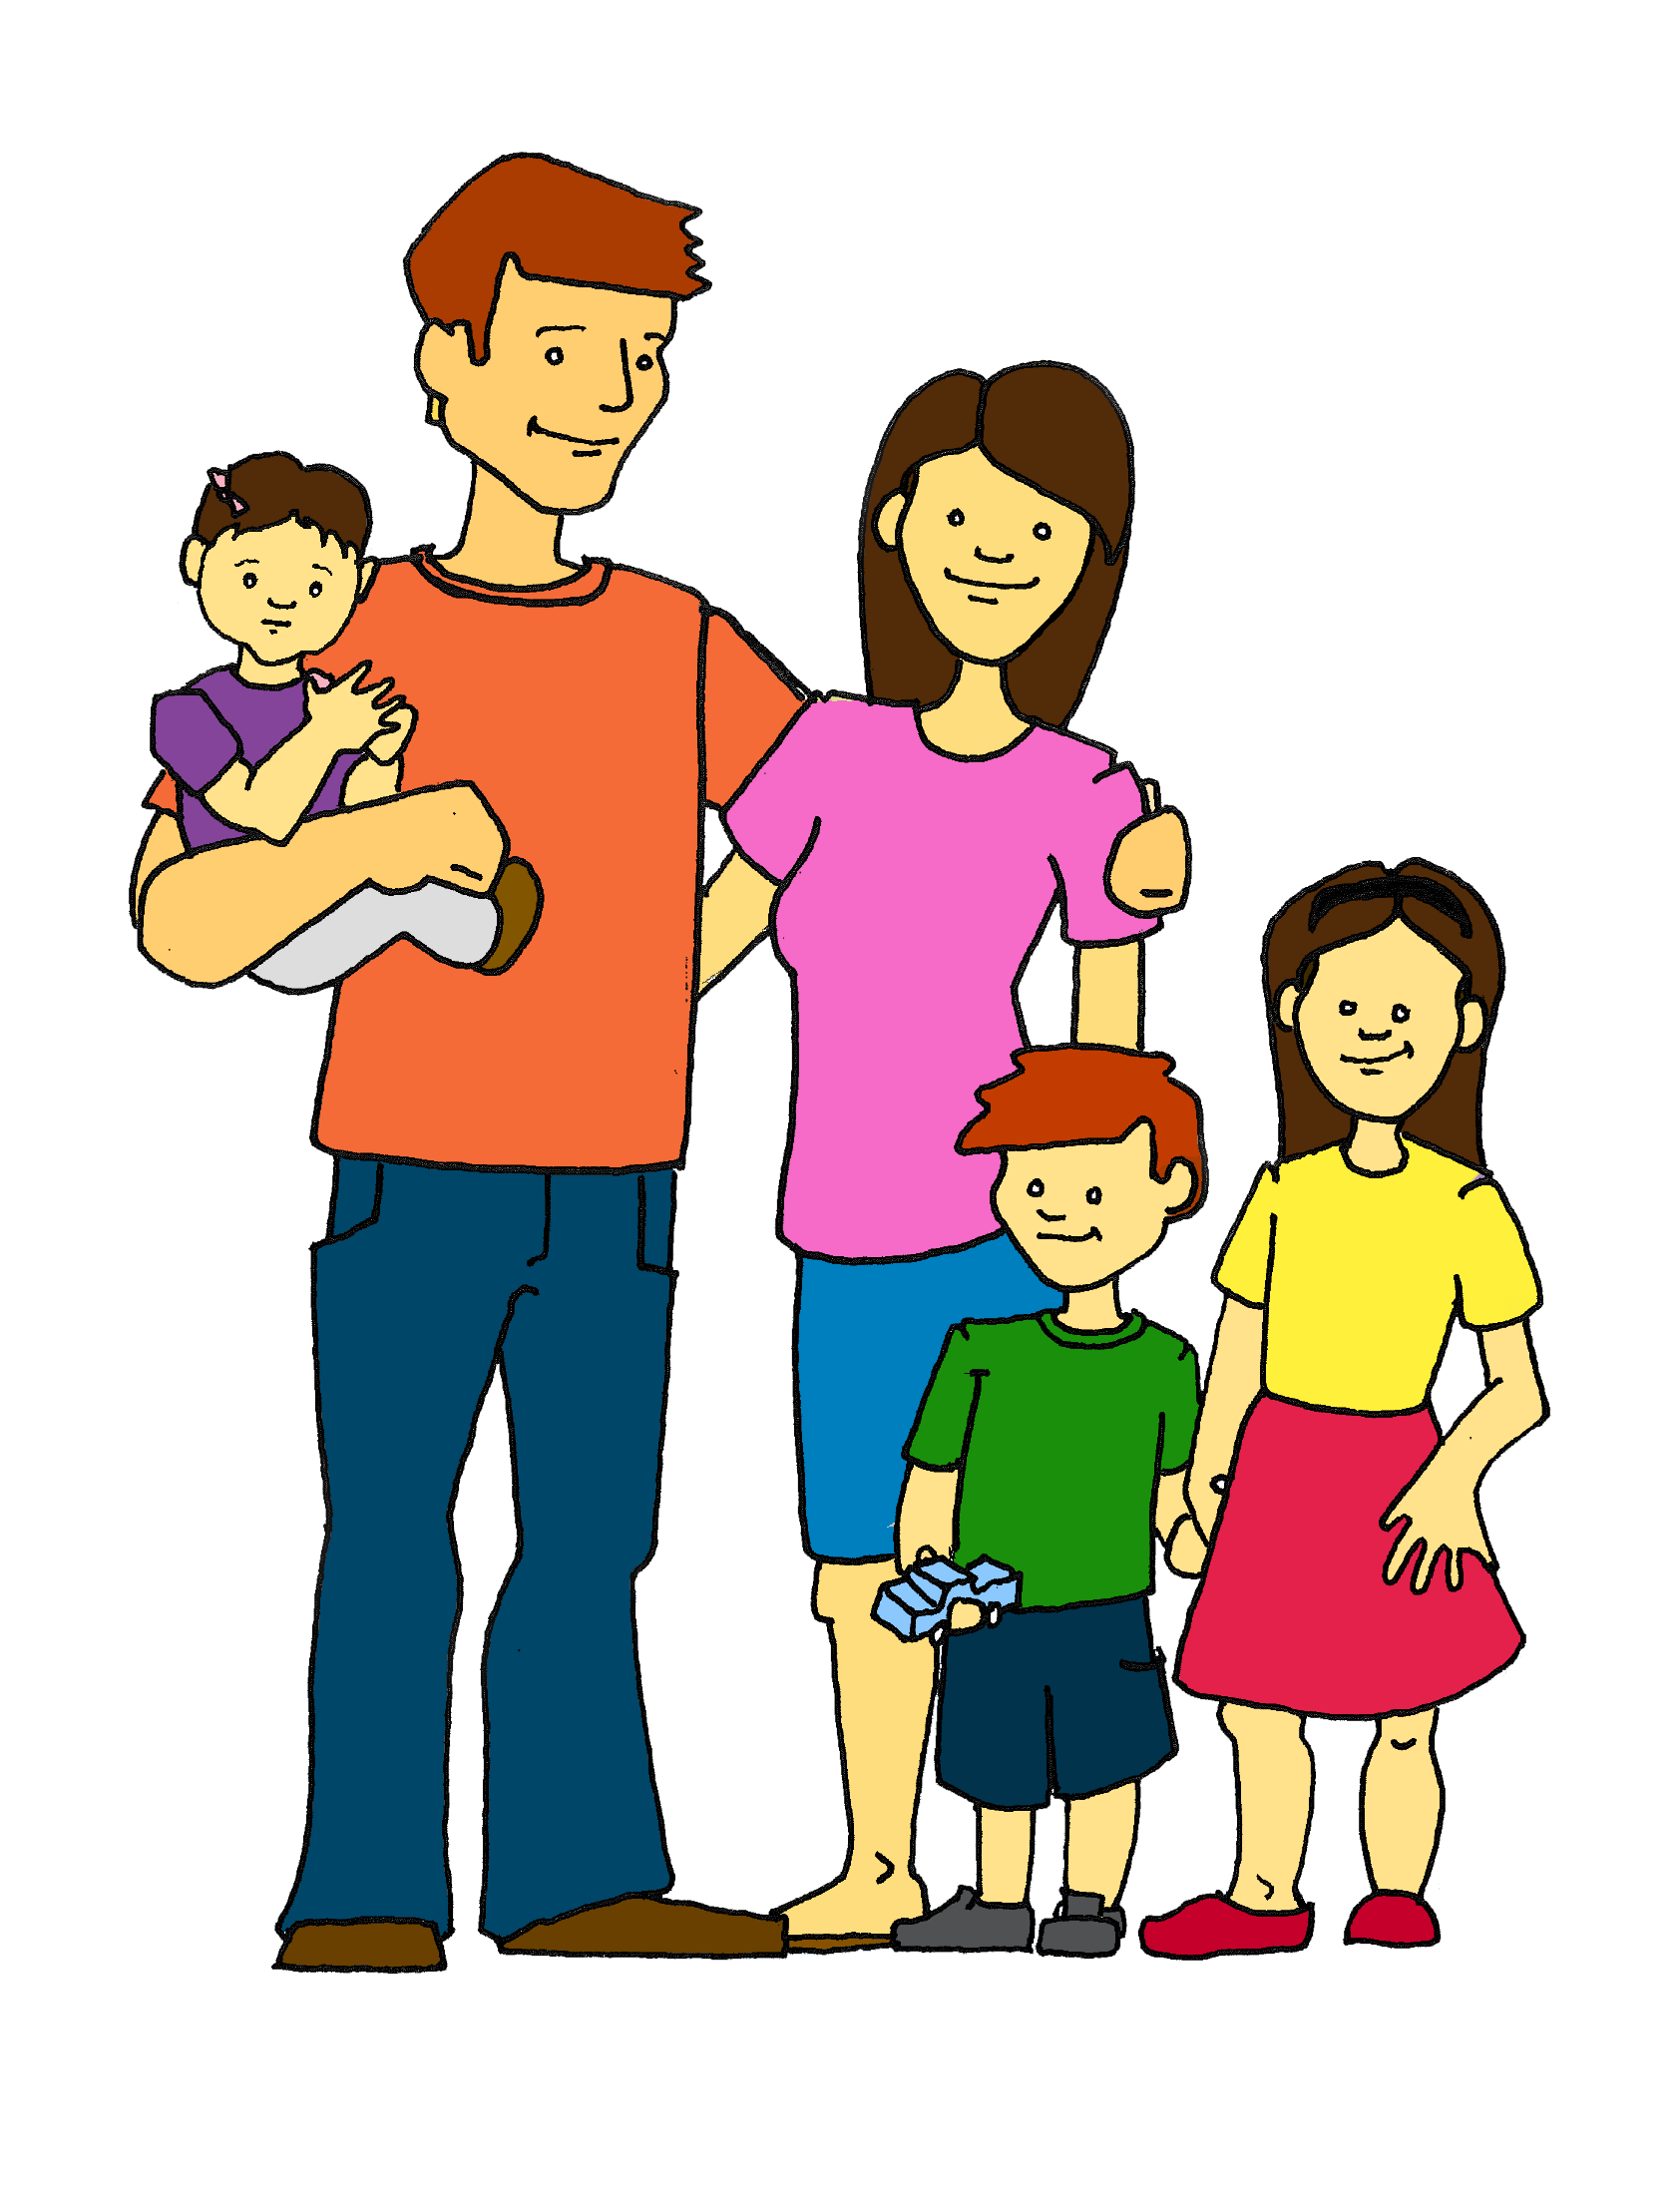 Www.clip Art Image Of Families-Www.clip Art Image Of Families-1